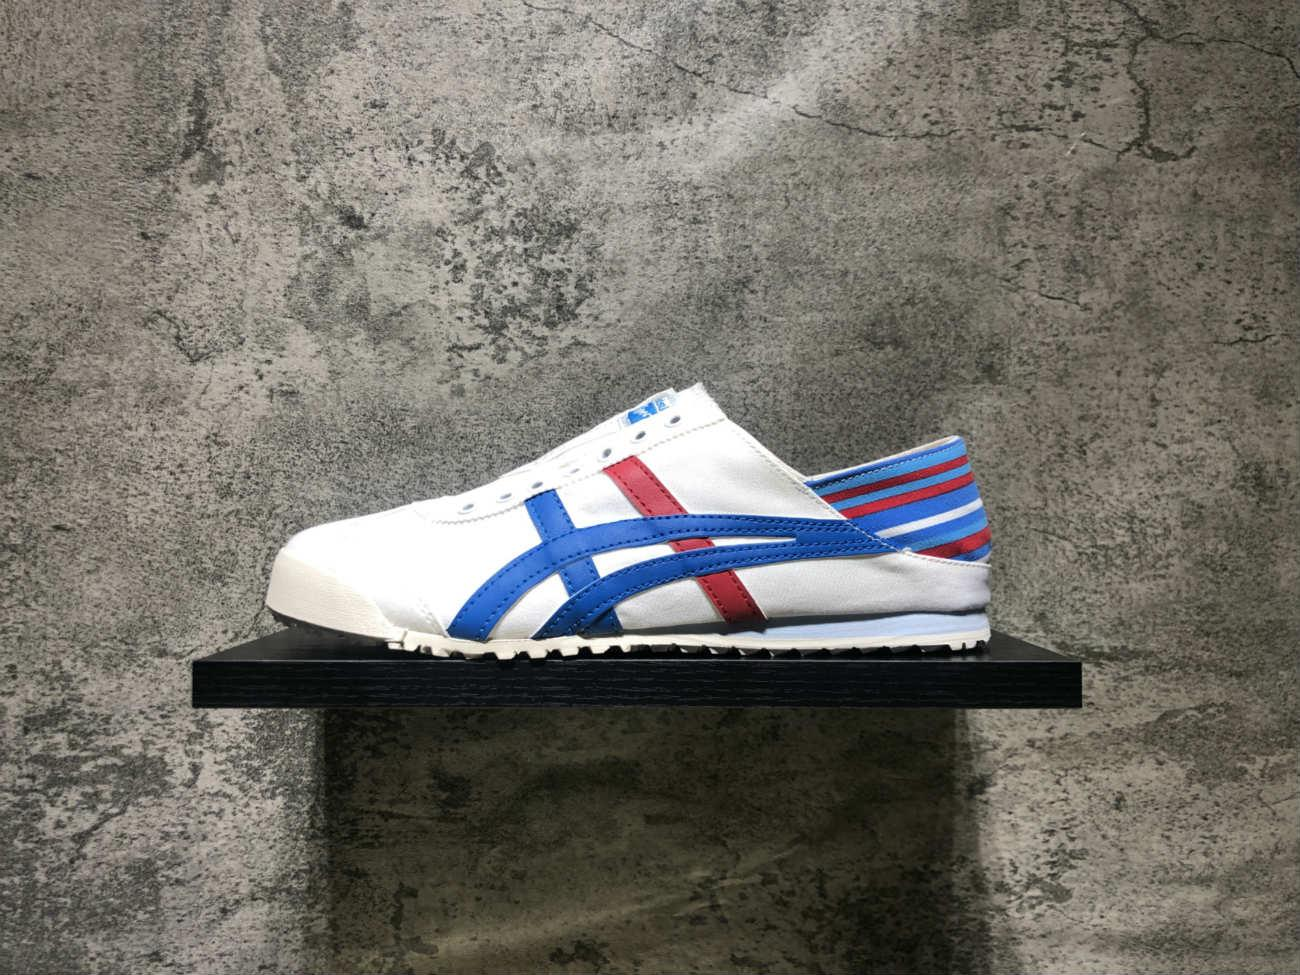 100% authentic dffed c0bcc Onitsuka Tiger Mexico Unisex Canvas Lazy Shoes